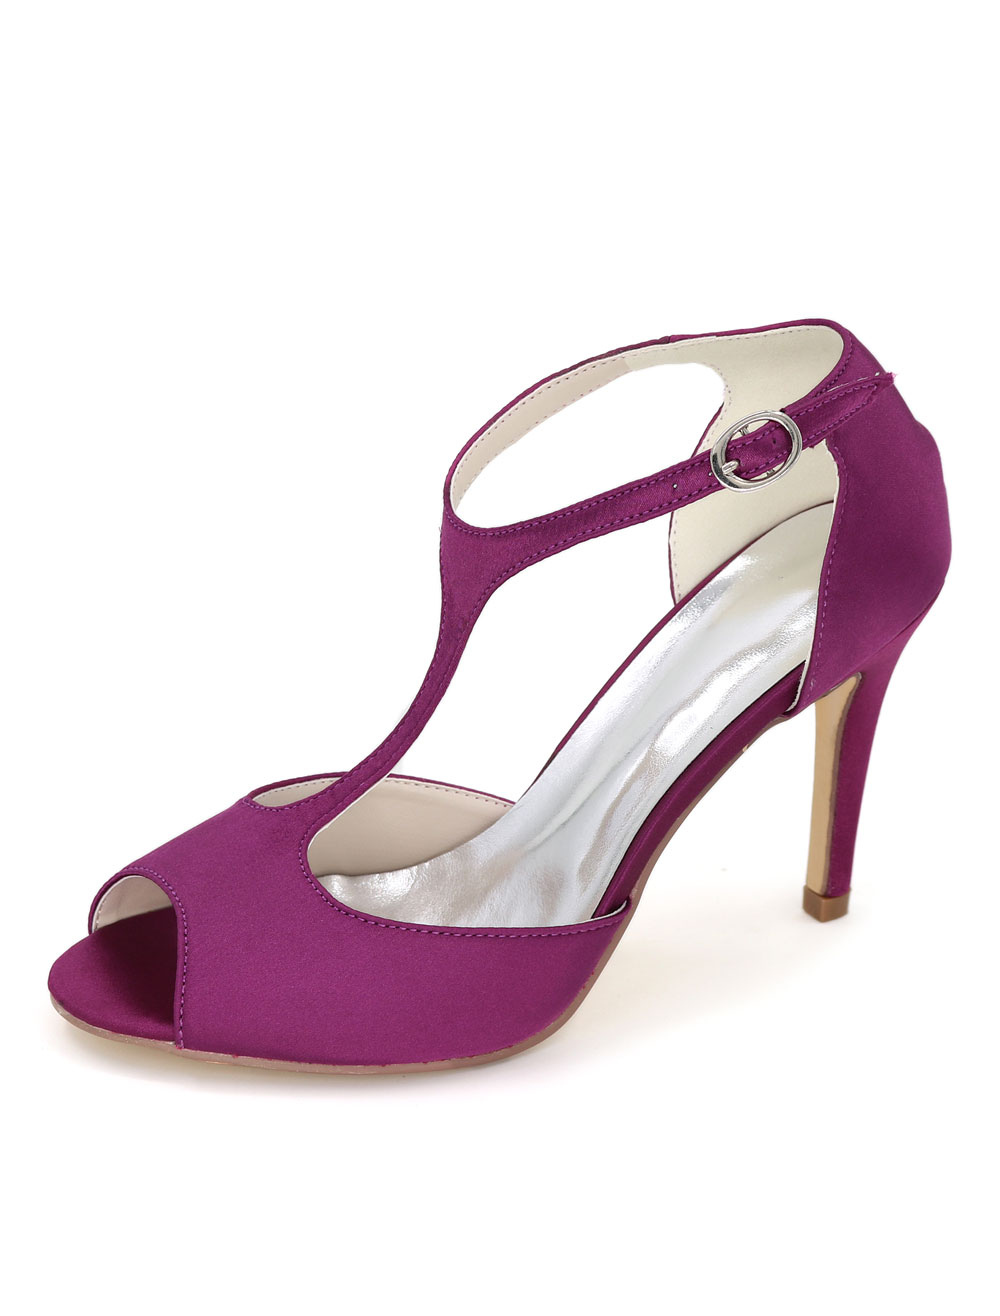 Purple Mother Shoes Satin Wedding Shoes Peep Toe T Type High Heels